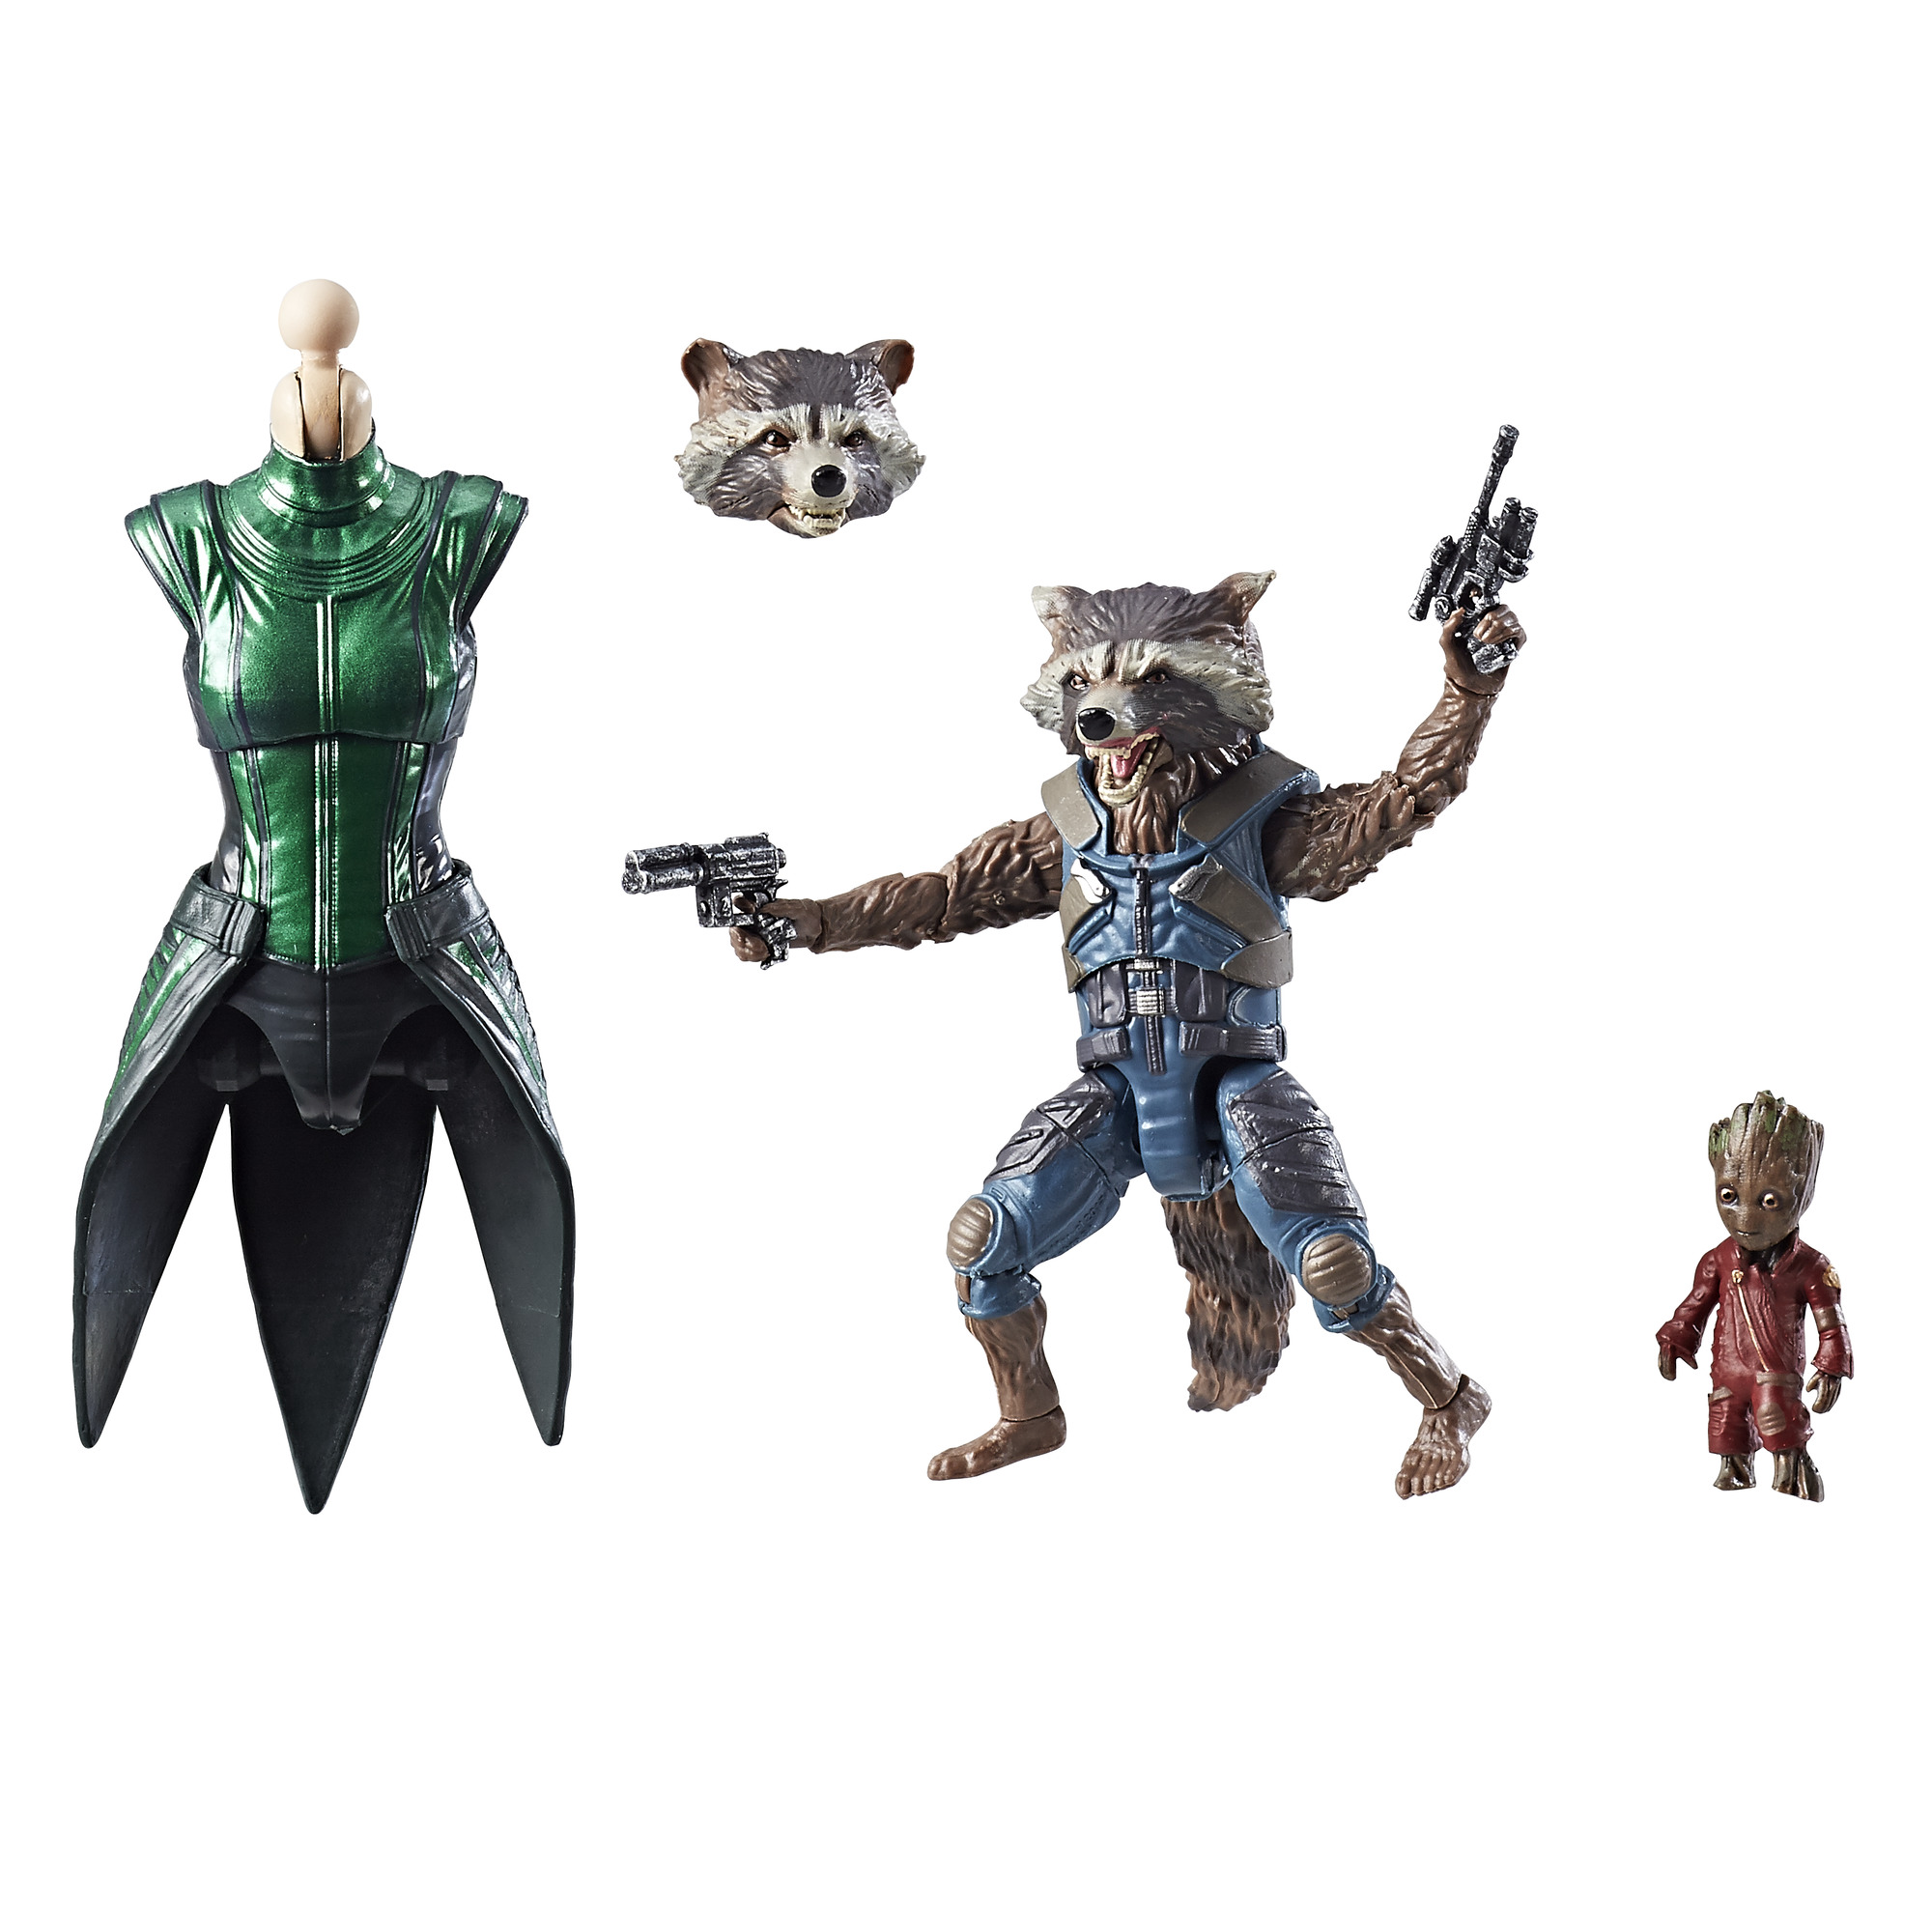 Marvel Guardians Of The Galaxy Legends Series Rocket Raccoon by Marvel Guardians Of The Galaxy